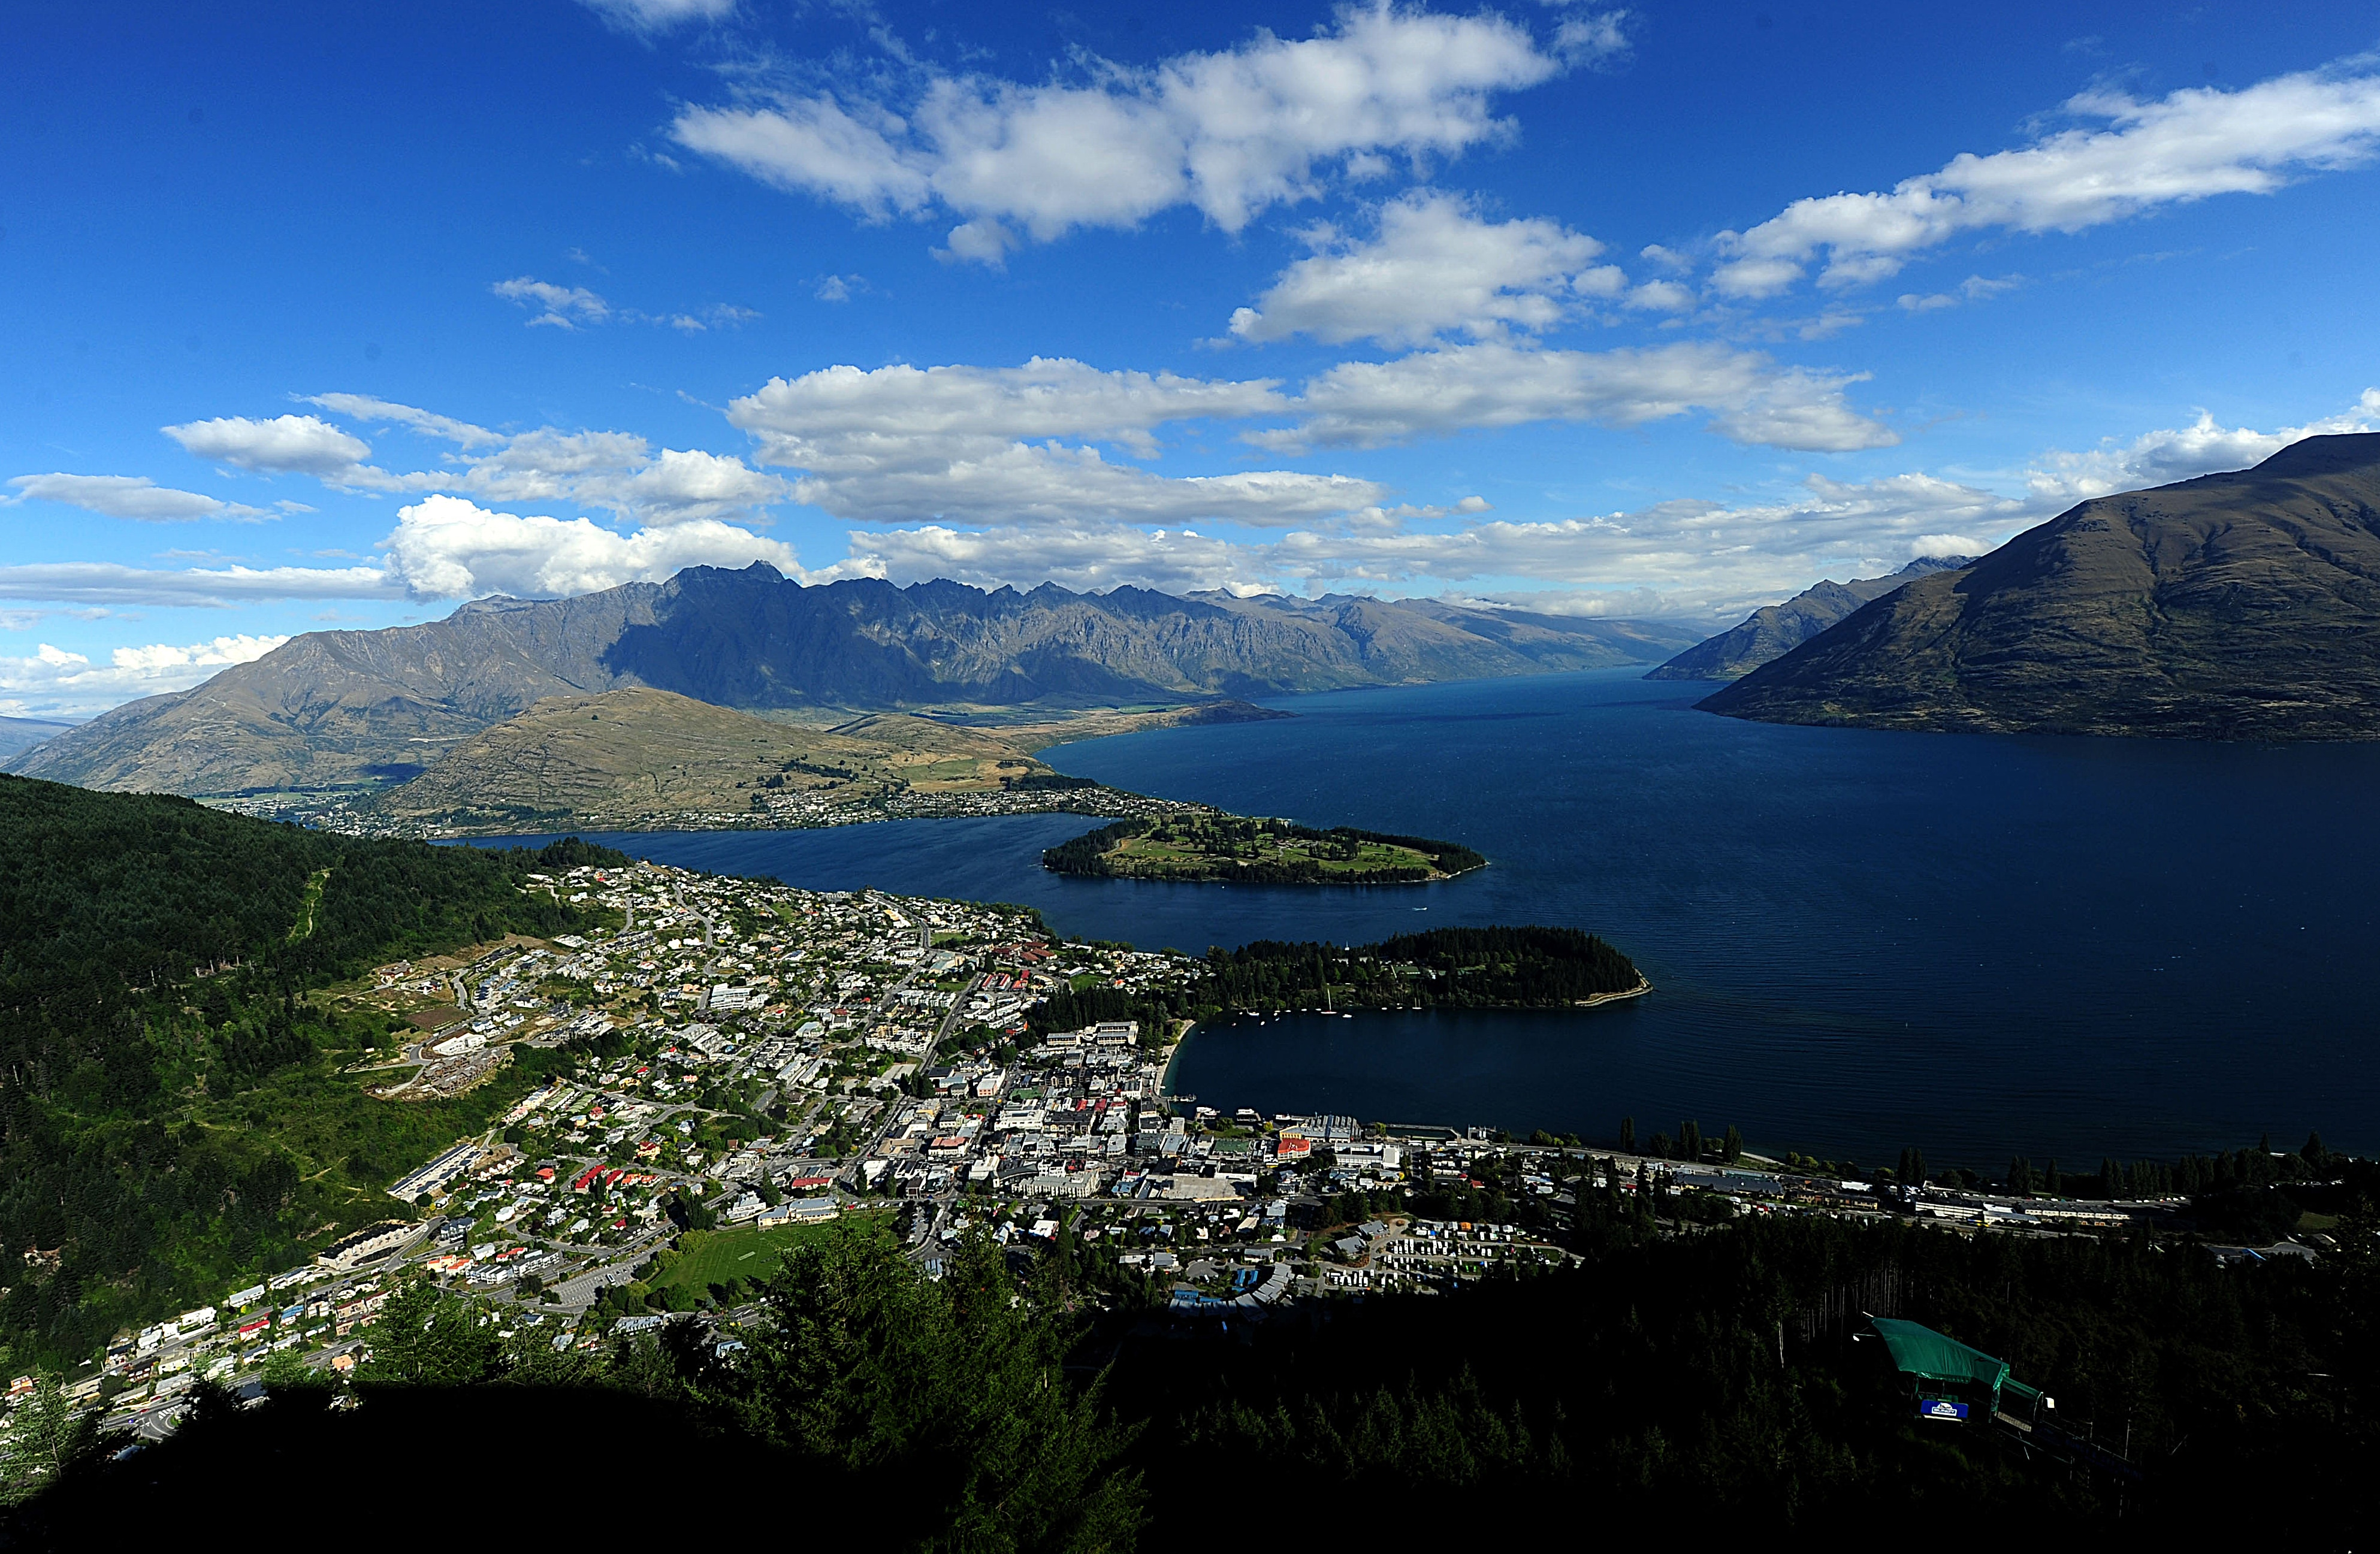 A general view of Queenstown, New Zealand on the South Island.